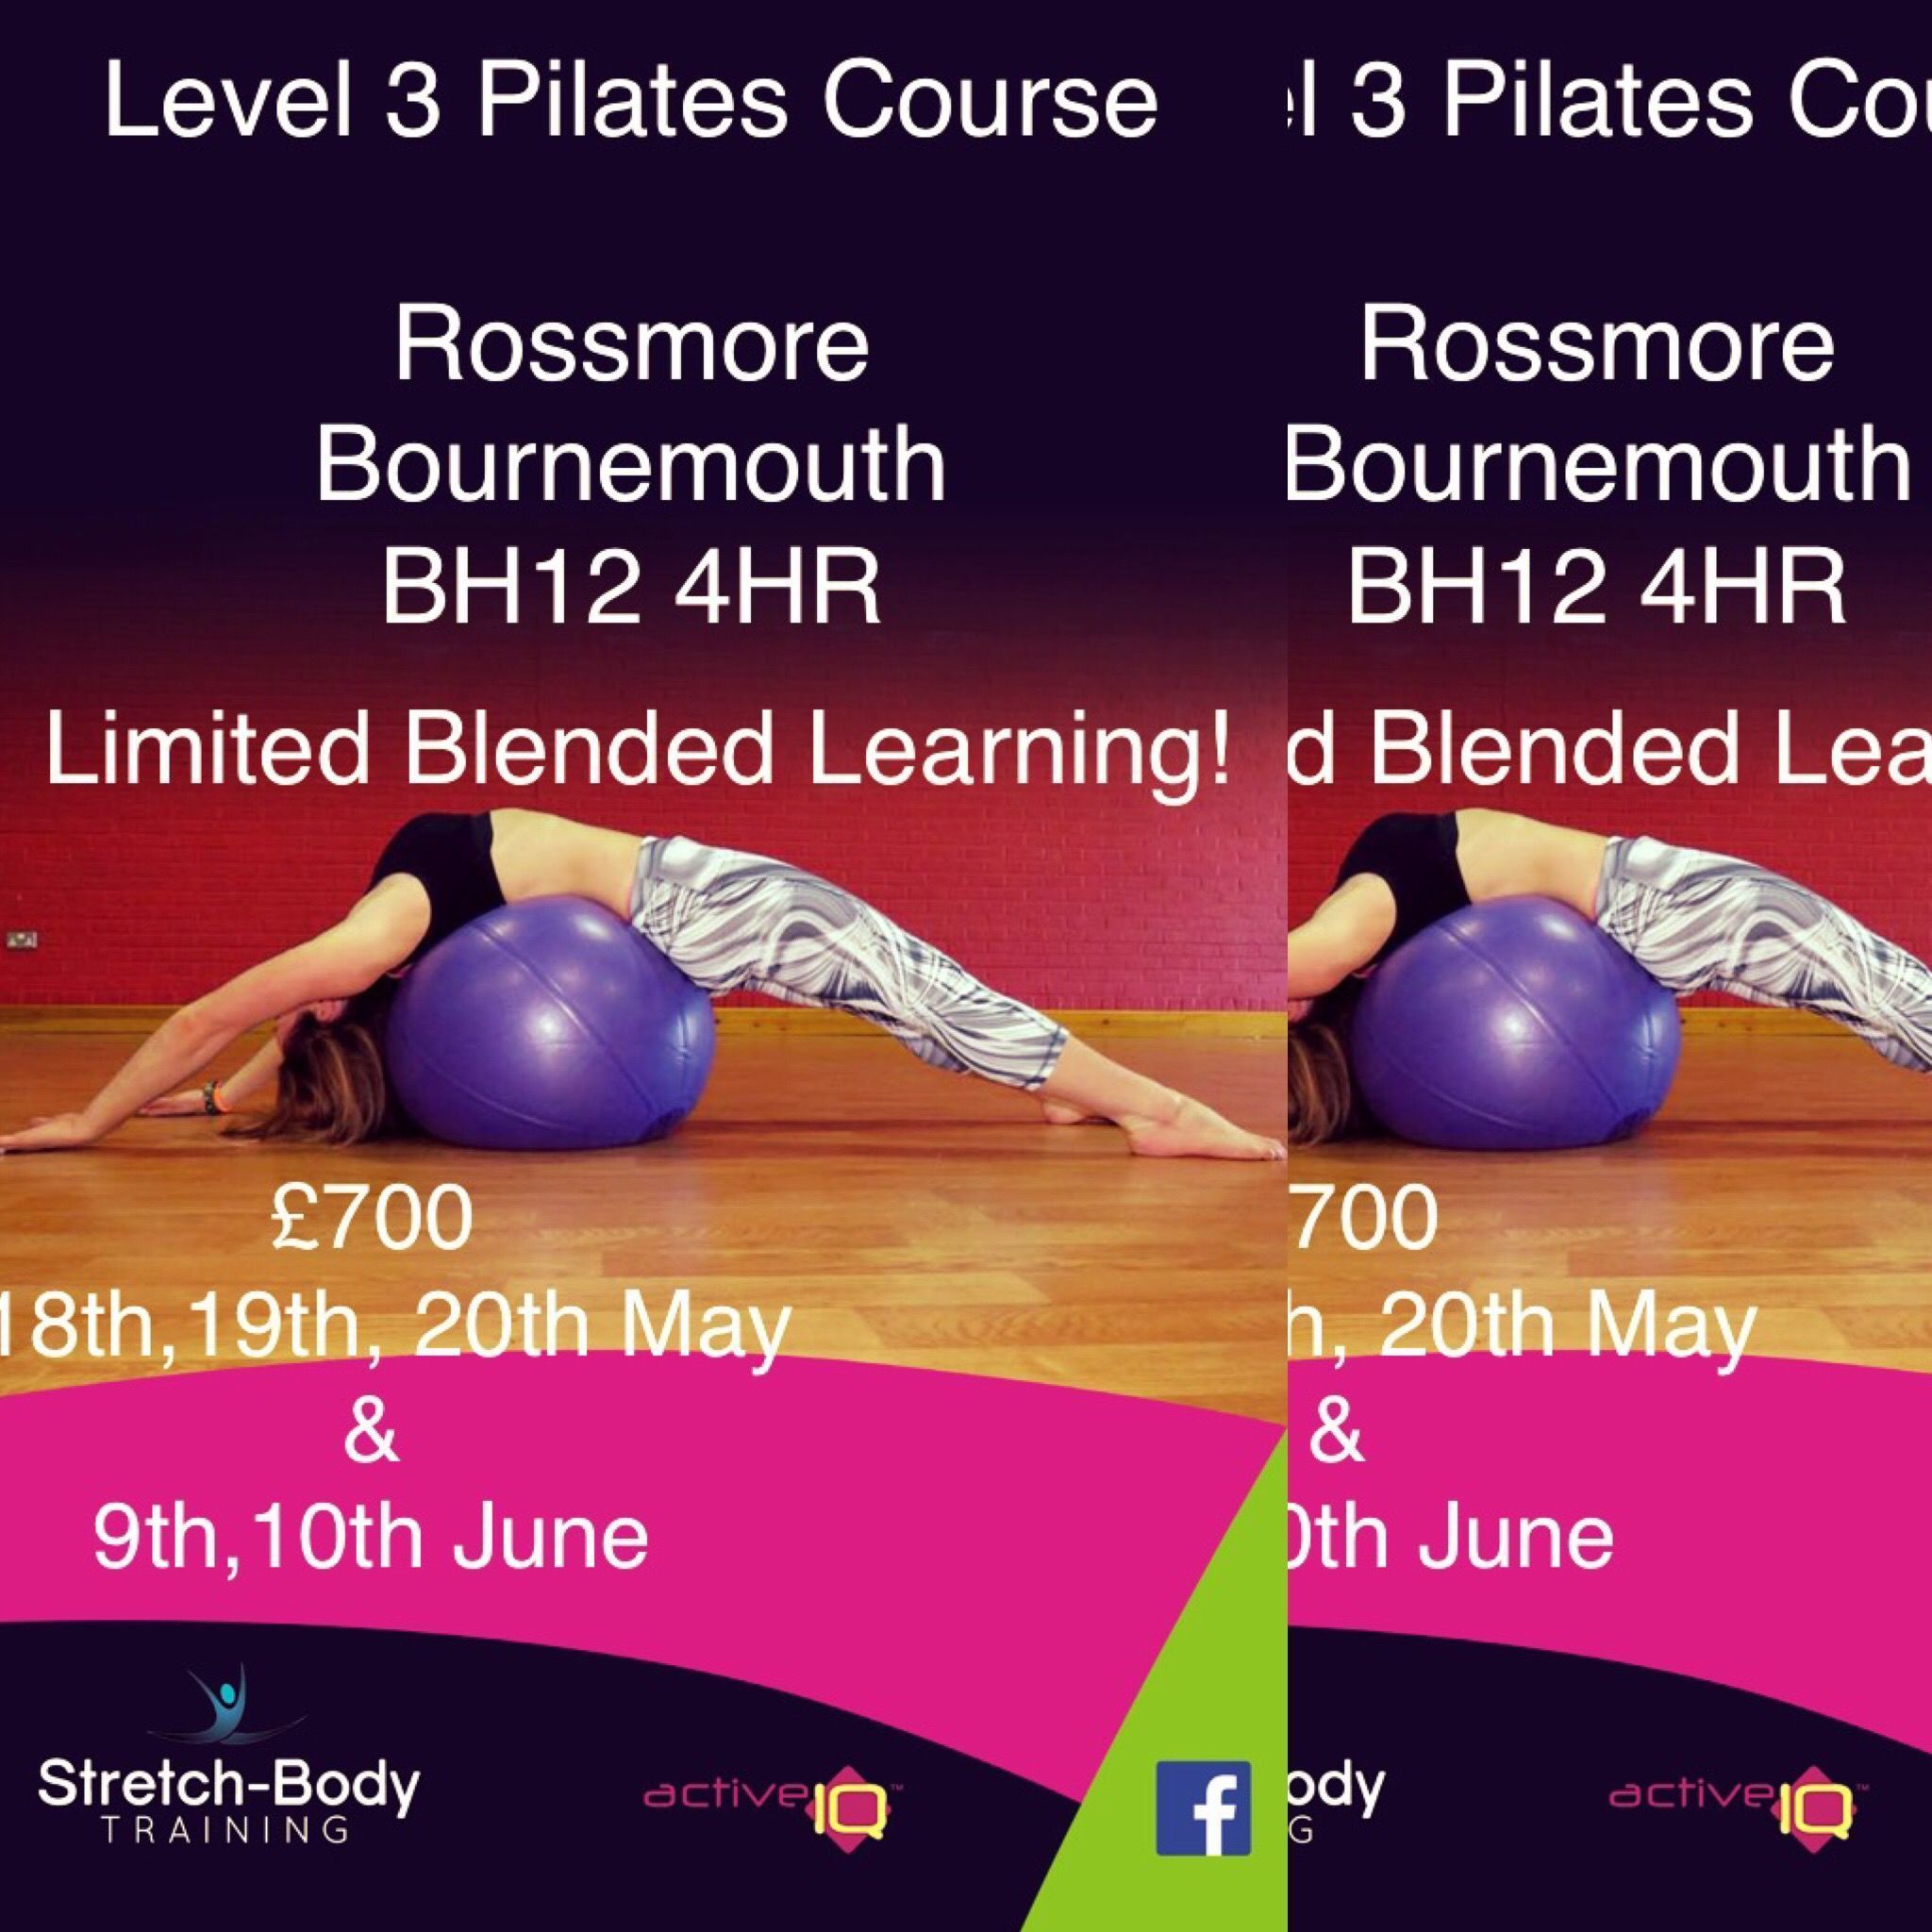 #pilates course level 3 #bournemouth #fitness #education #health #pilatescourses #pilates course lev...